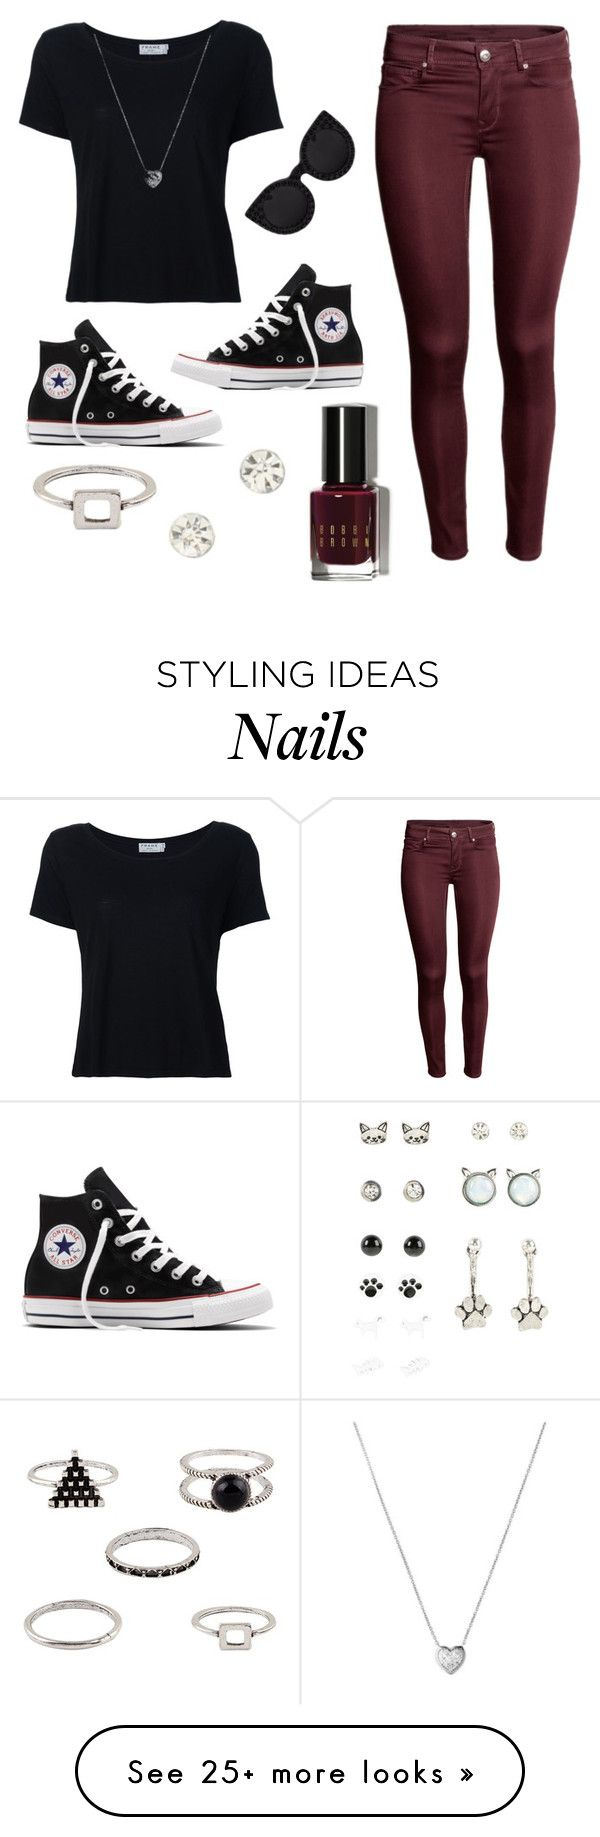 """Booty"" by jjwahlberg on Polyvore featuring Frame Denim, Converse, Delalle, Links of London and Bobbi Brown Cosmetics"